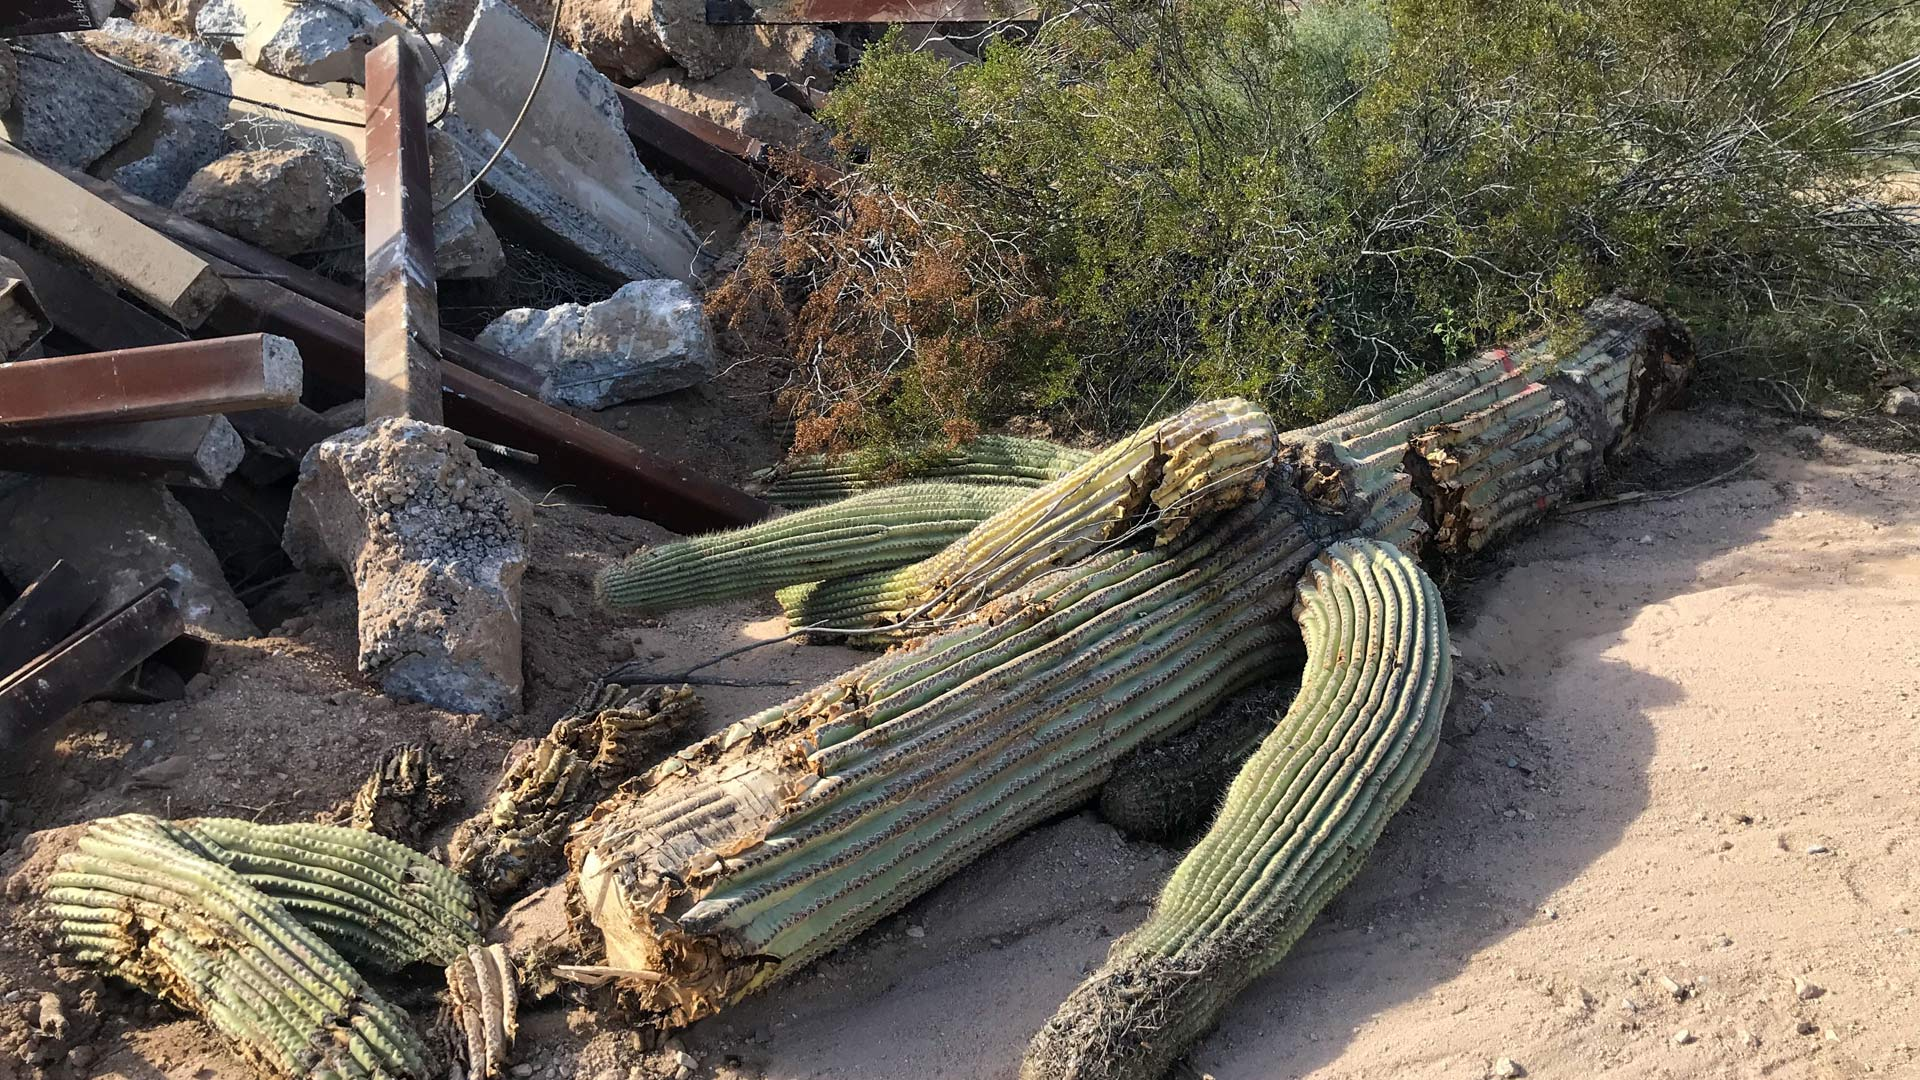 Groups allege attempted sale of saguaros from border wall; ask state to investigate